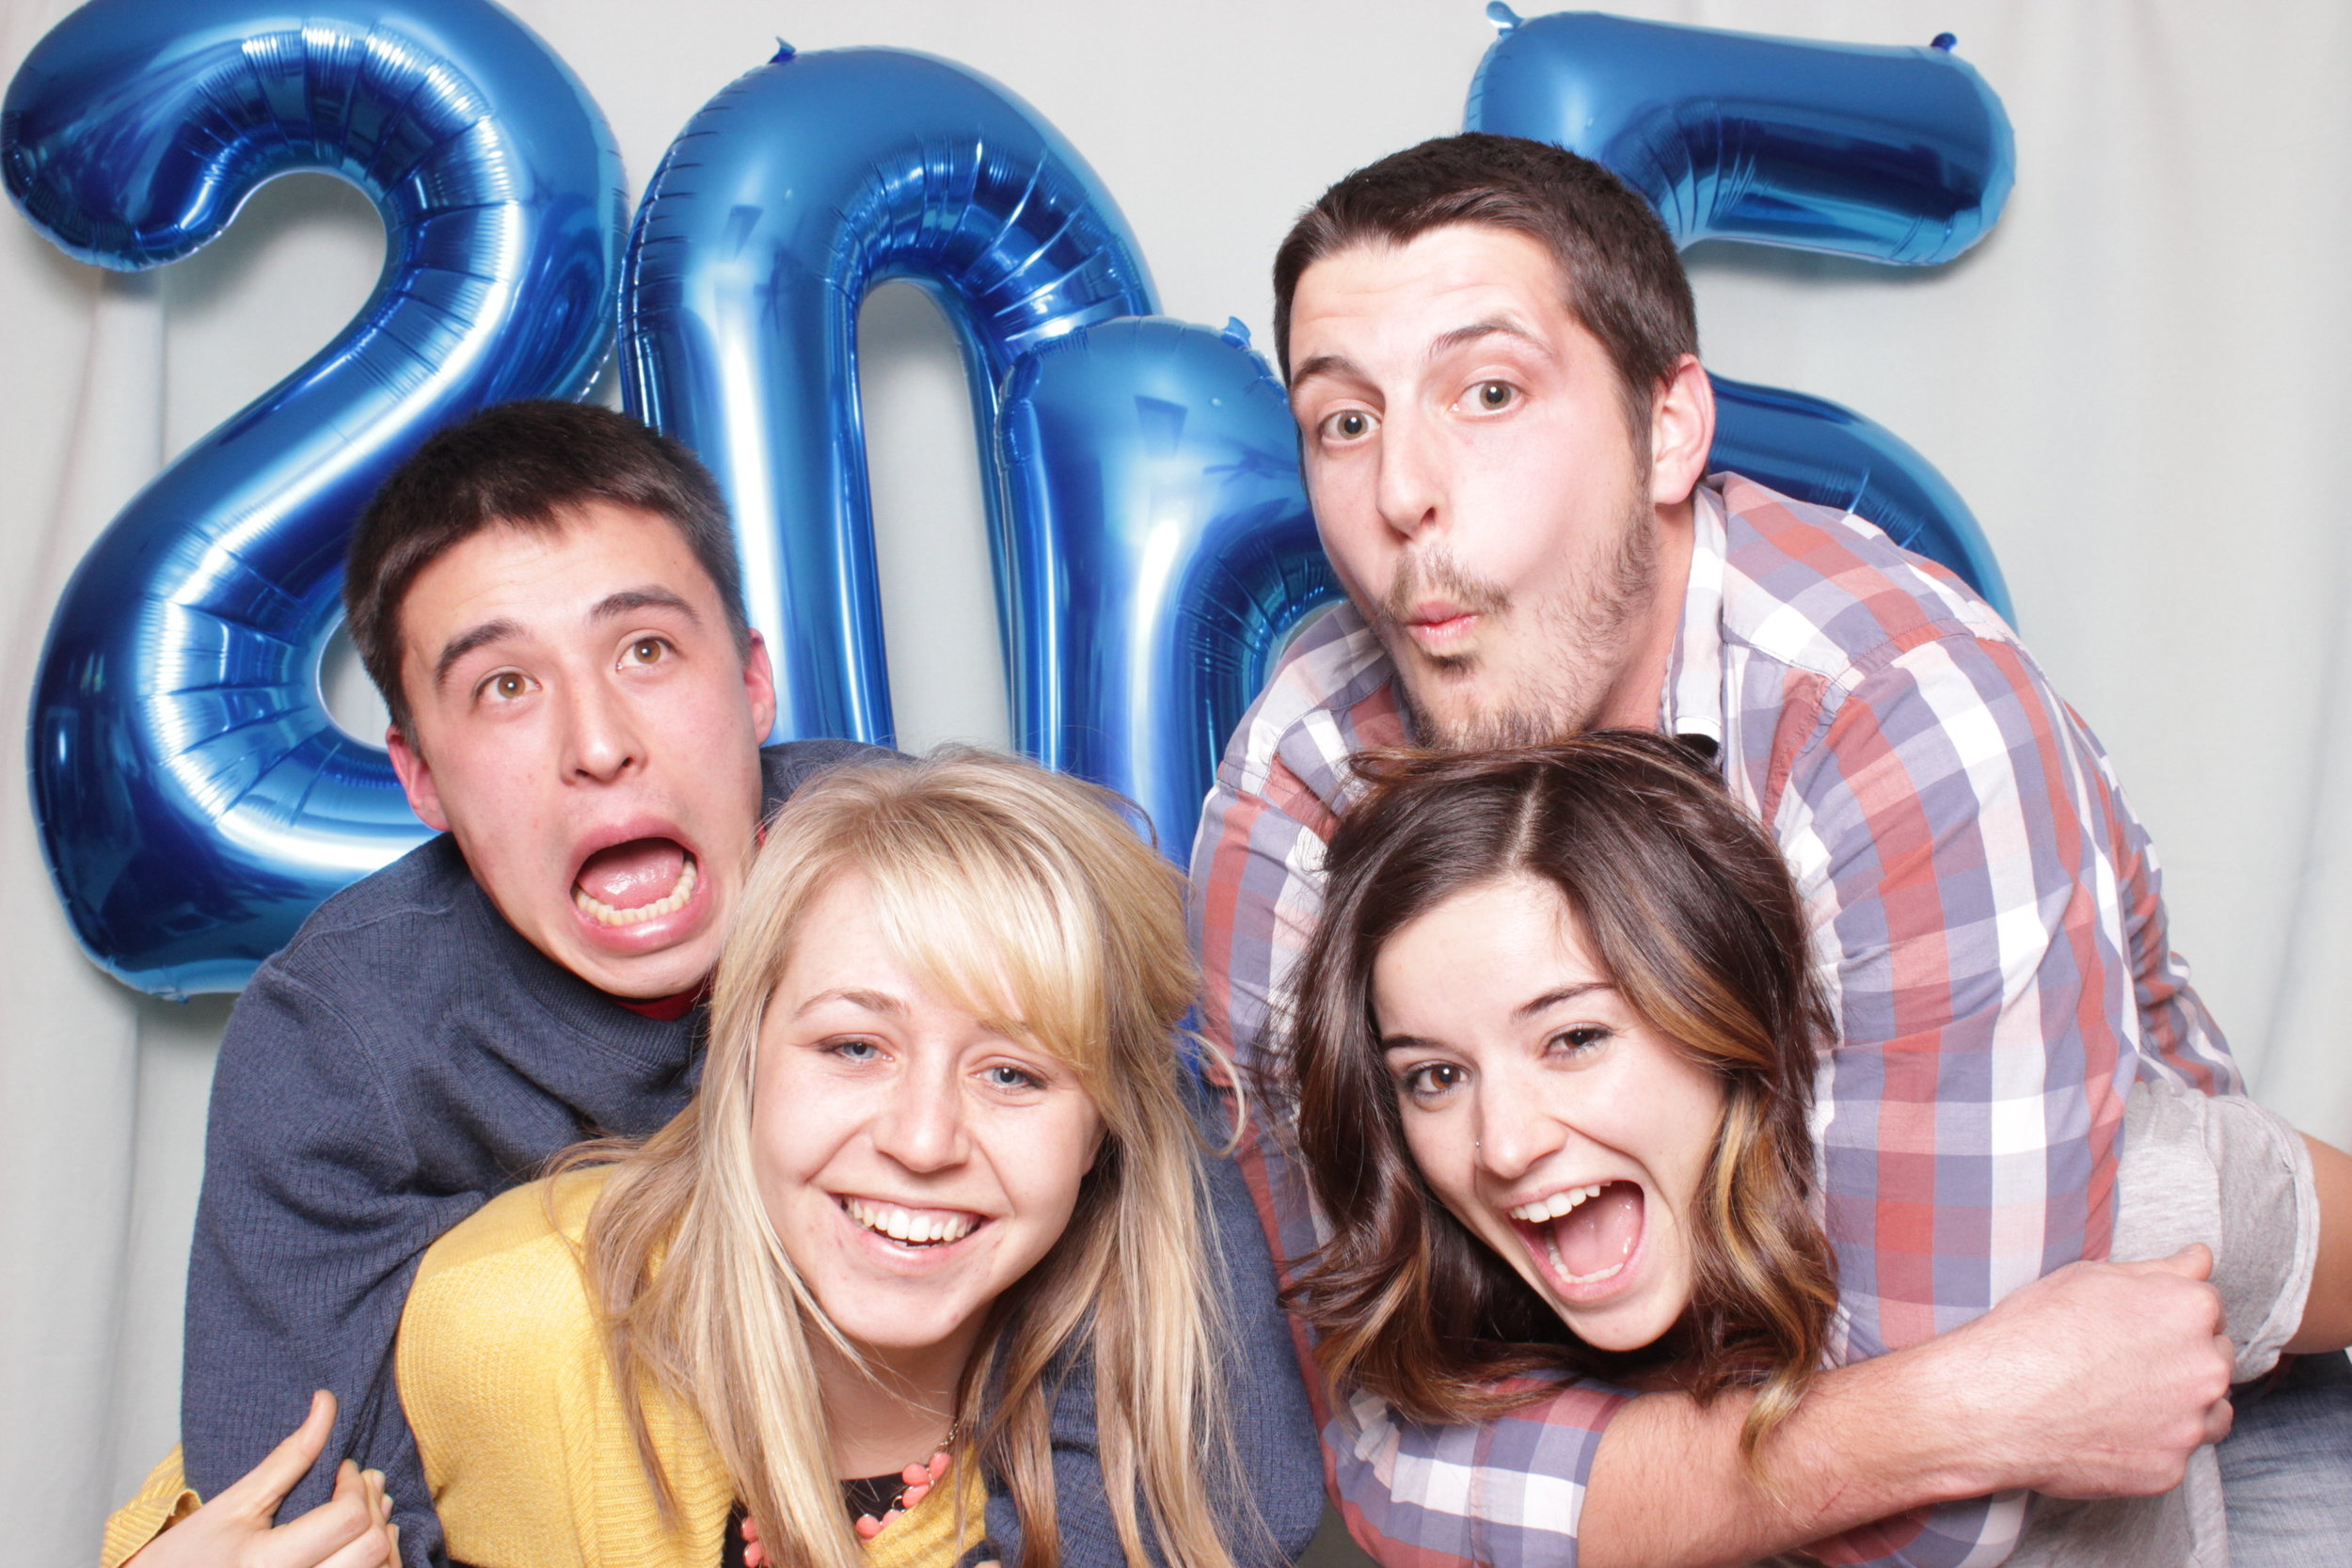 photo-booth-rental-in-chico-california-new-years-party-couples